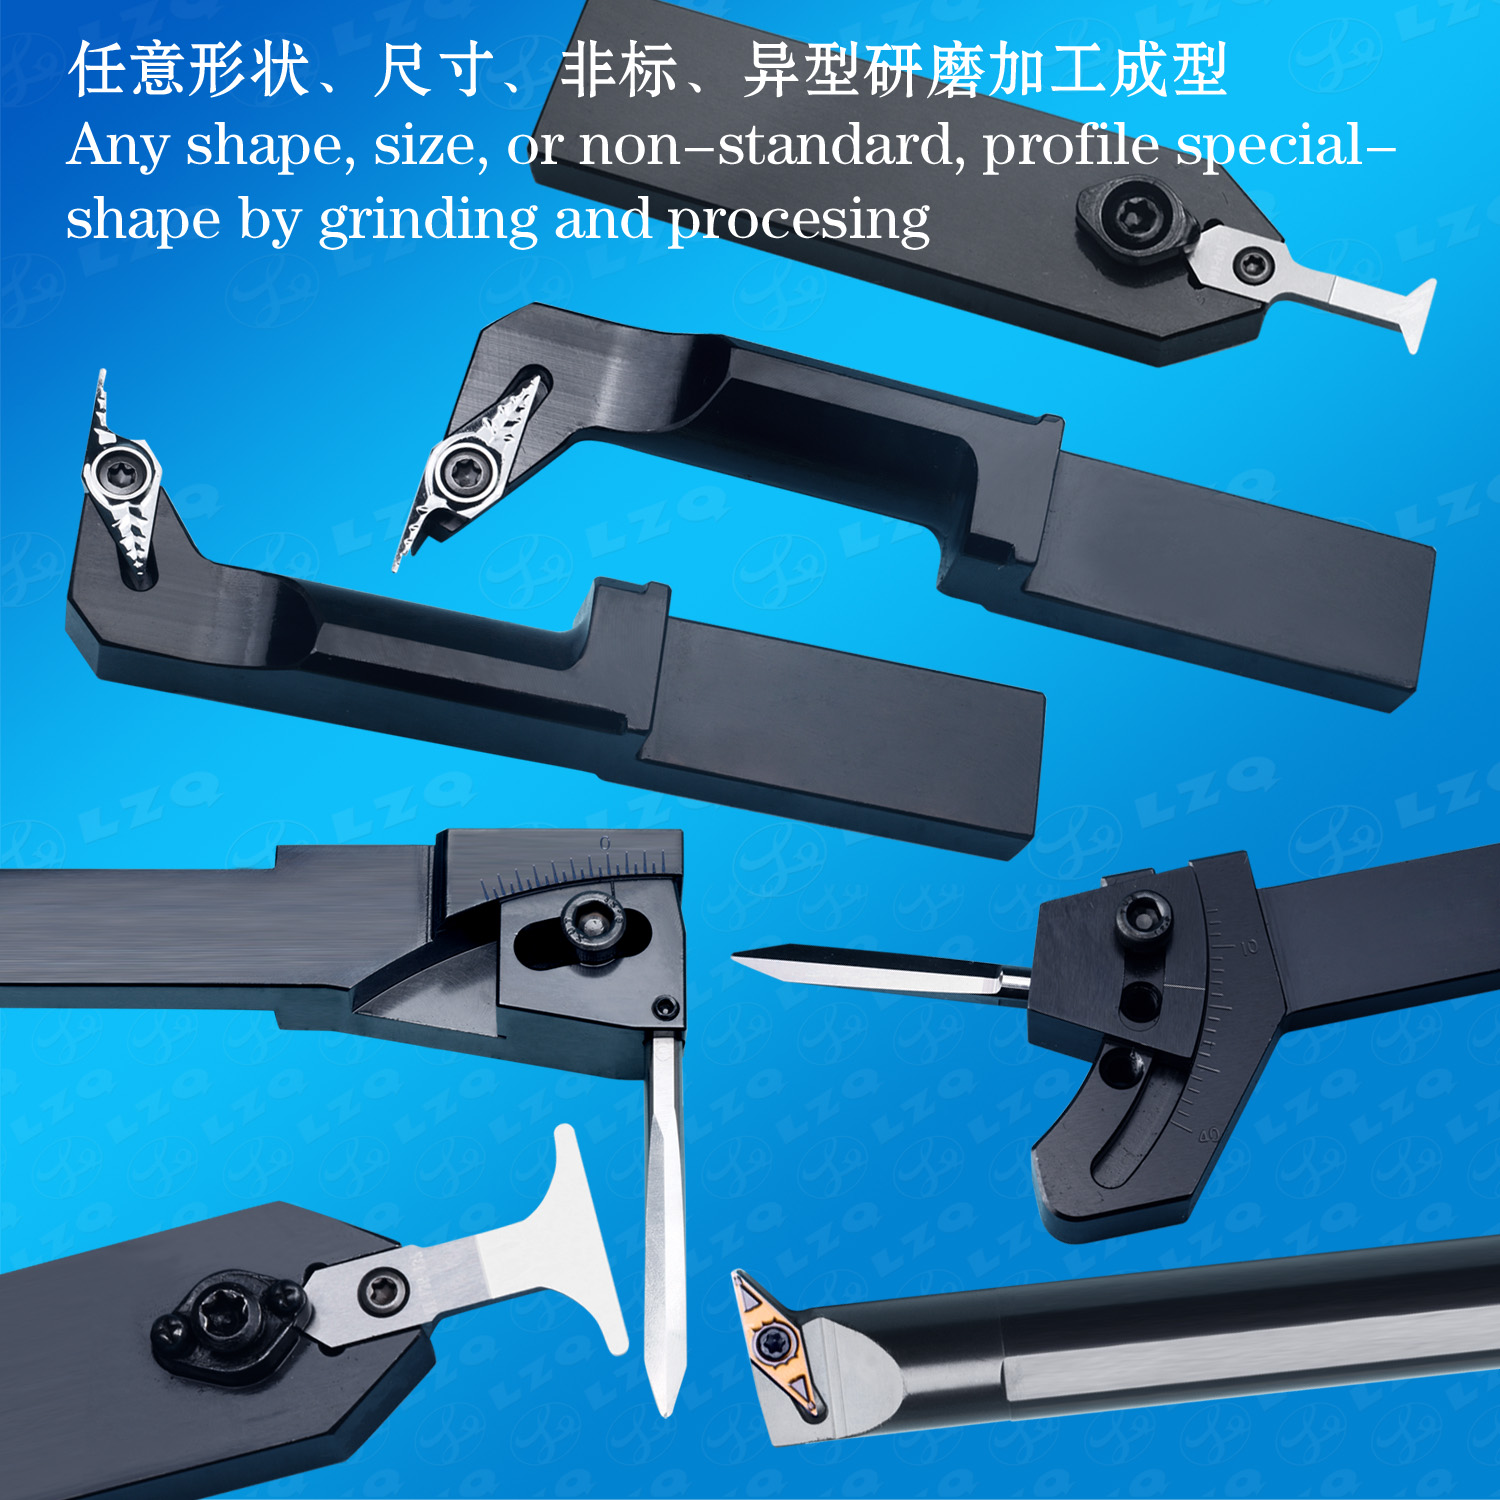 Turning Tool, Non-Standard Turning Tool, Precision Turning Tool